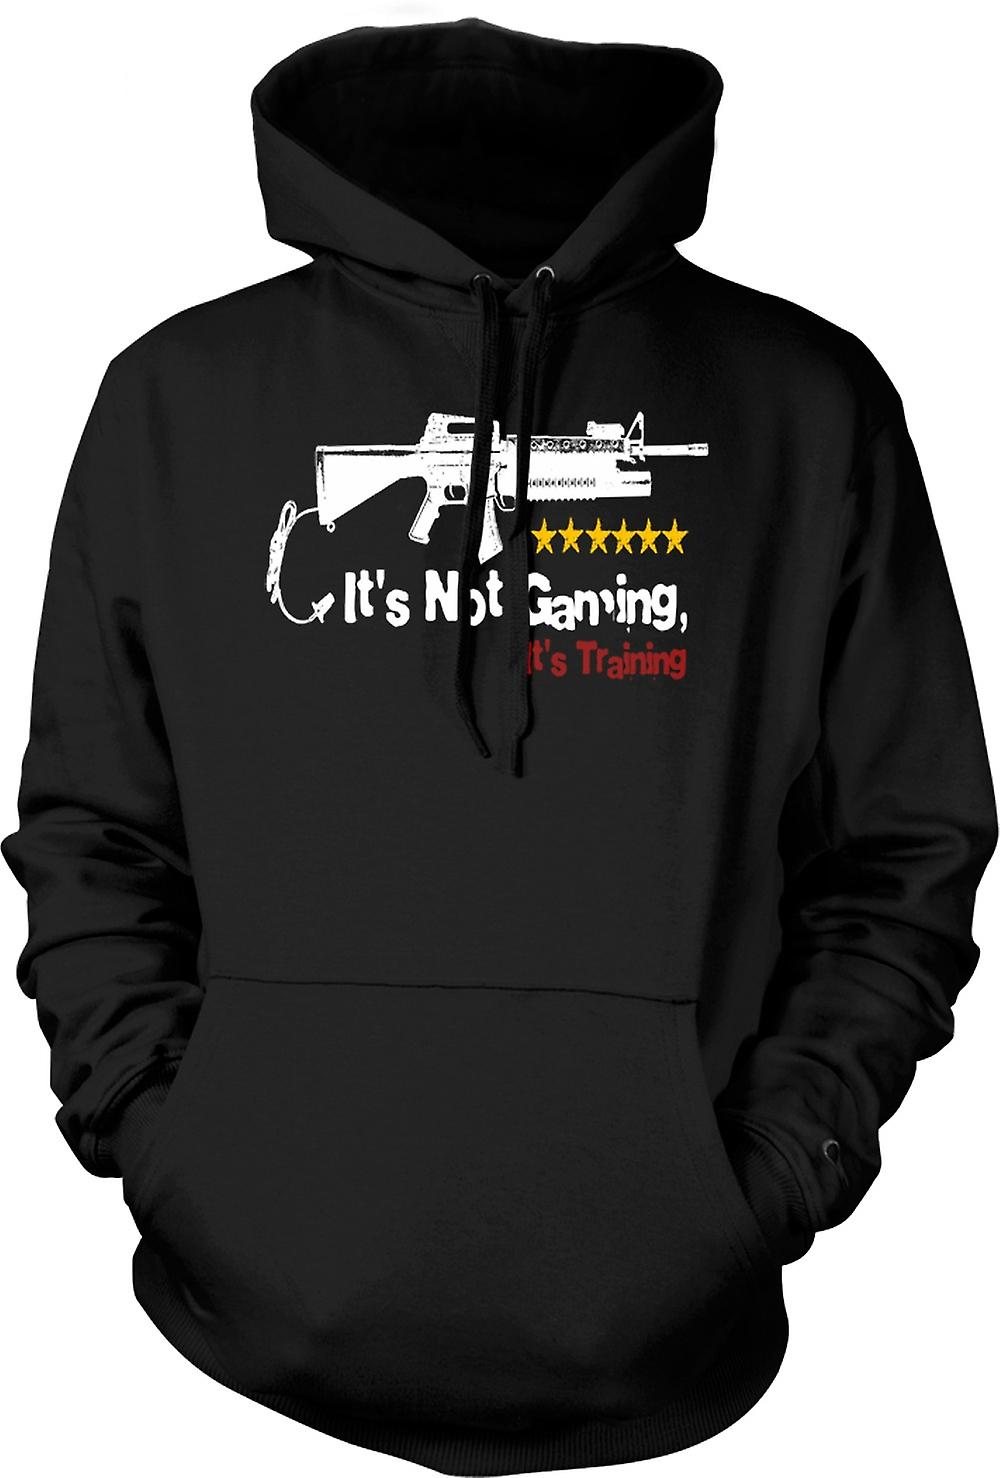 Mens Hoodie - It's Not Gaming It's Training - Funny